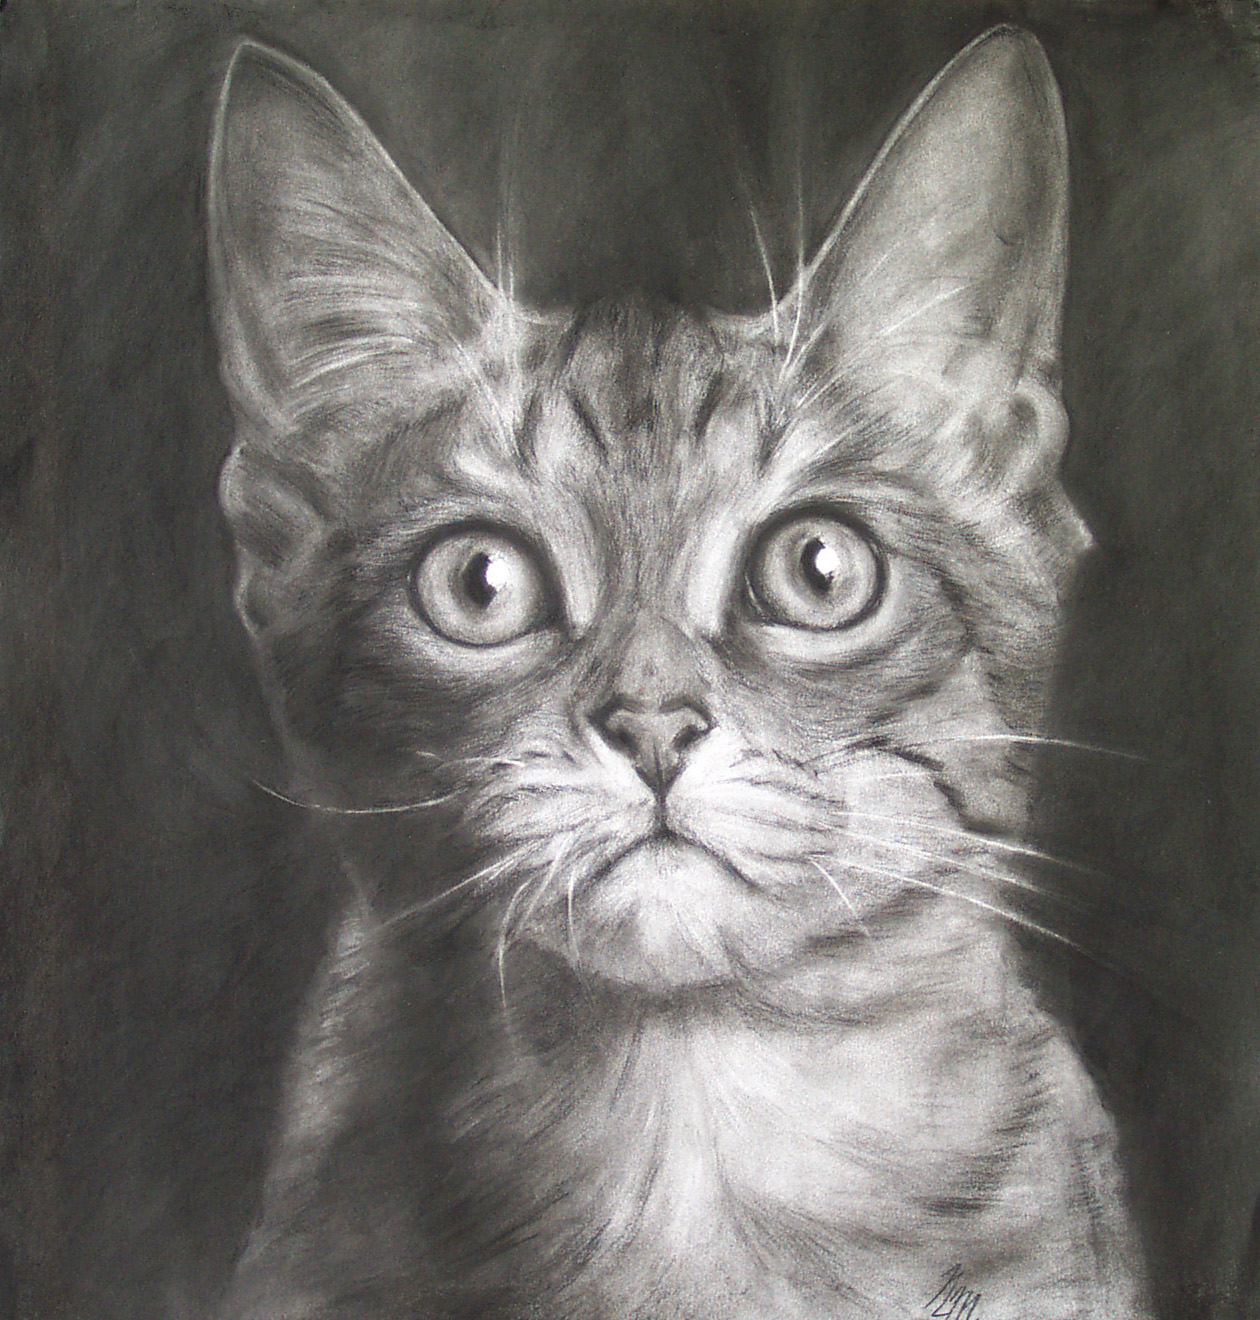 Charcoal drawing by Jim Montgomery Califonia Spangled Tabby